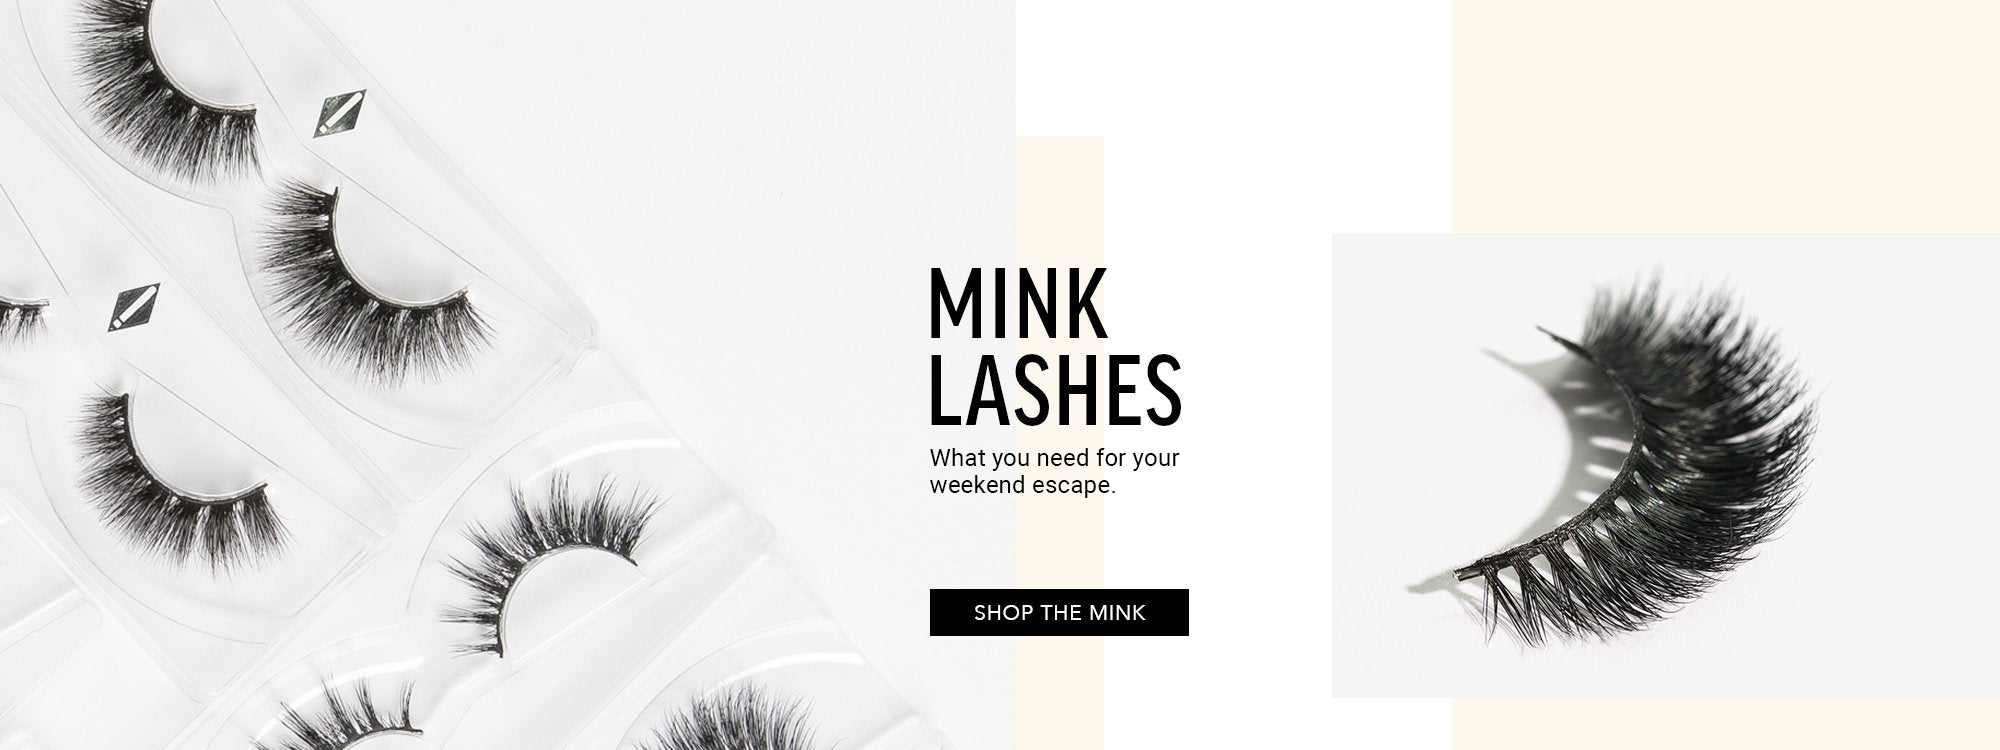 Mink Lashes - Weekend Escape